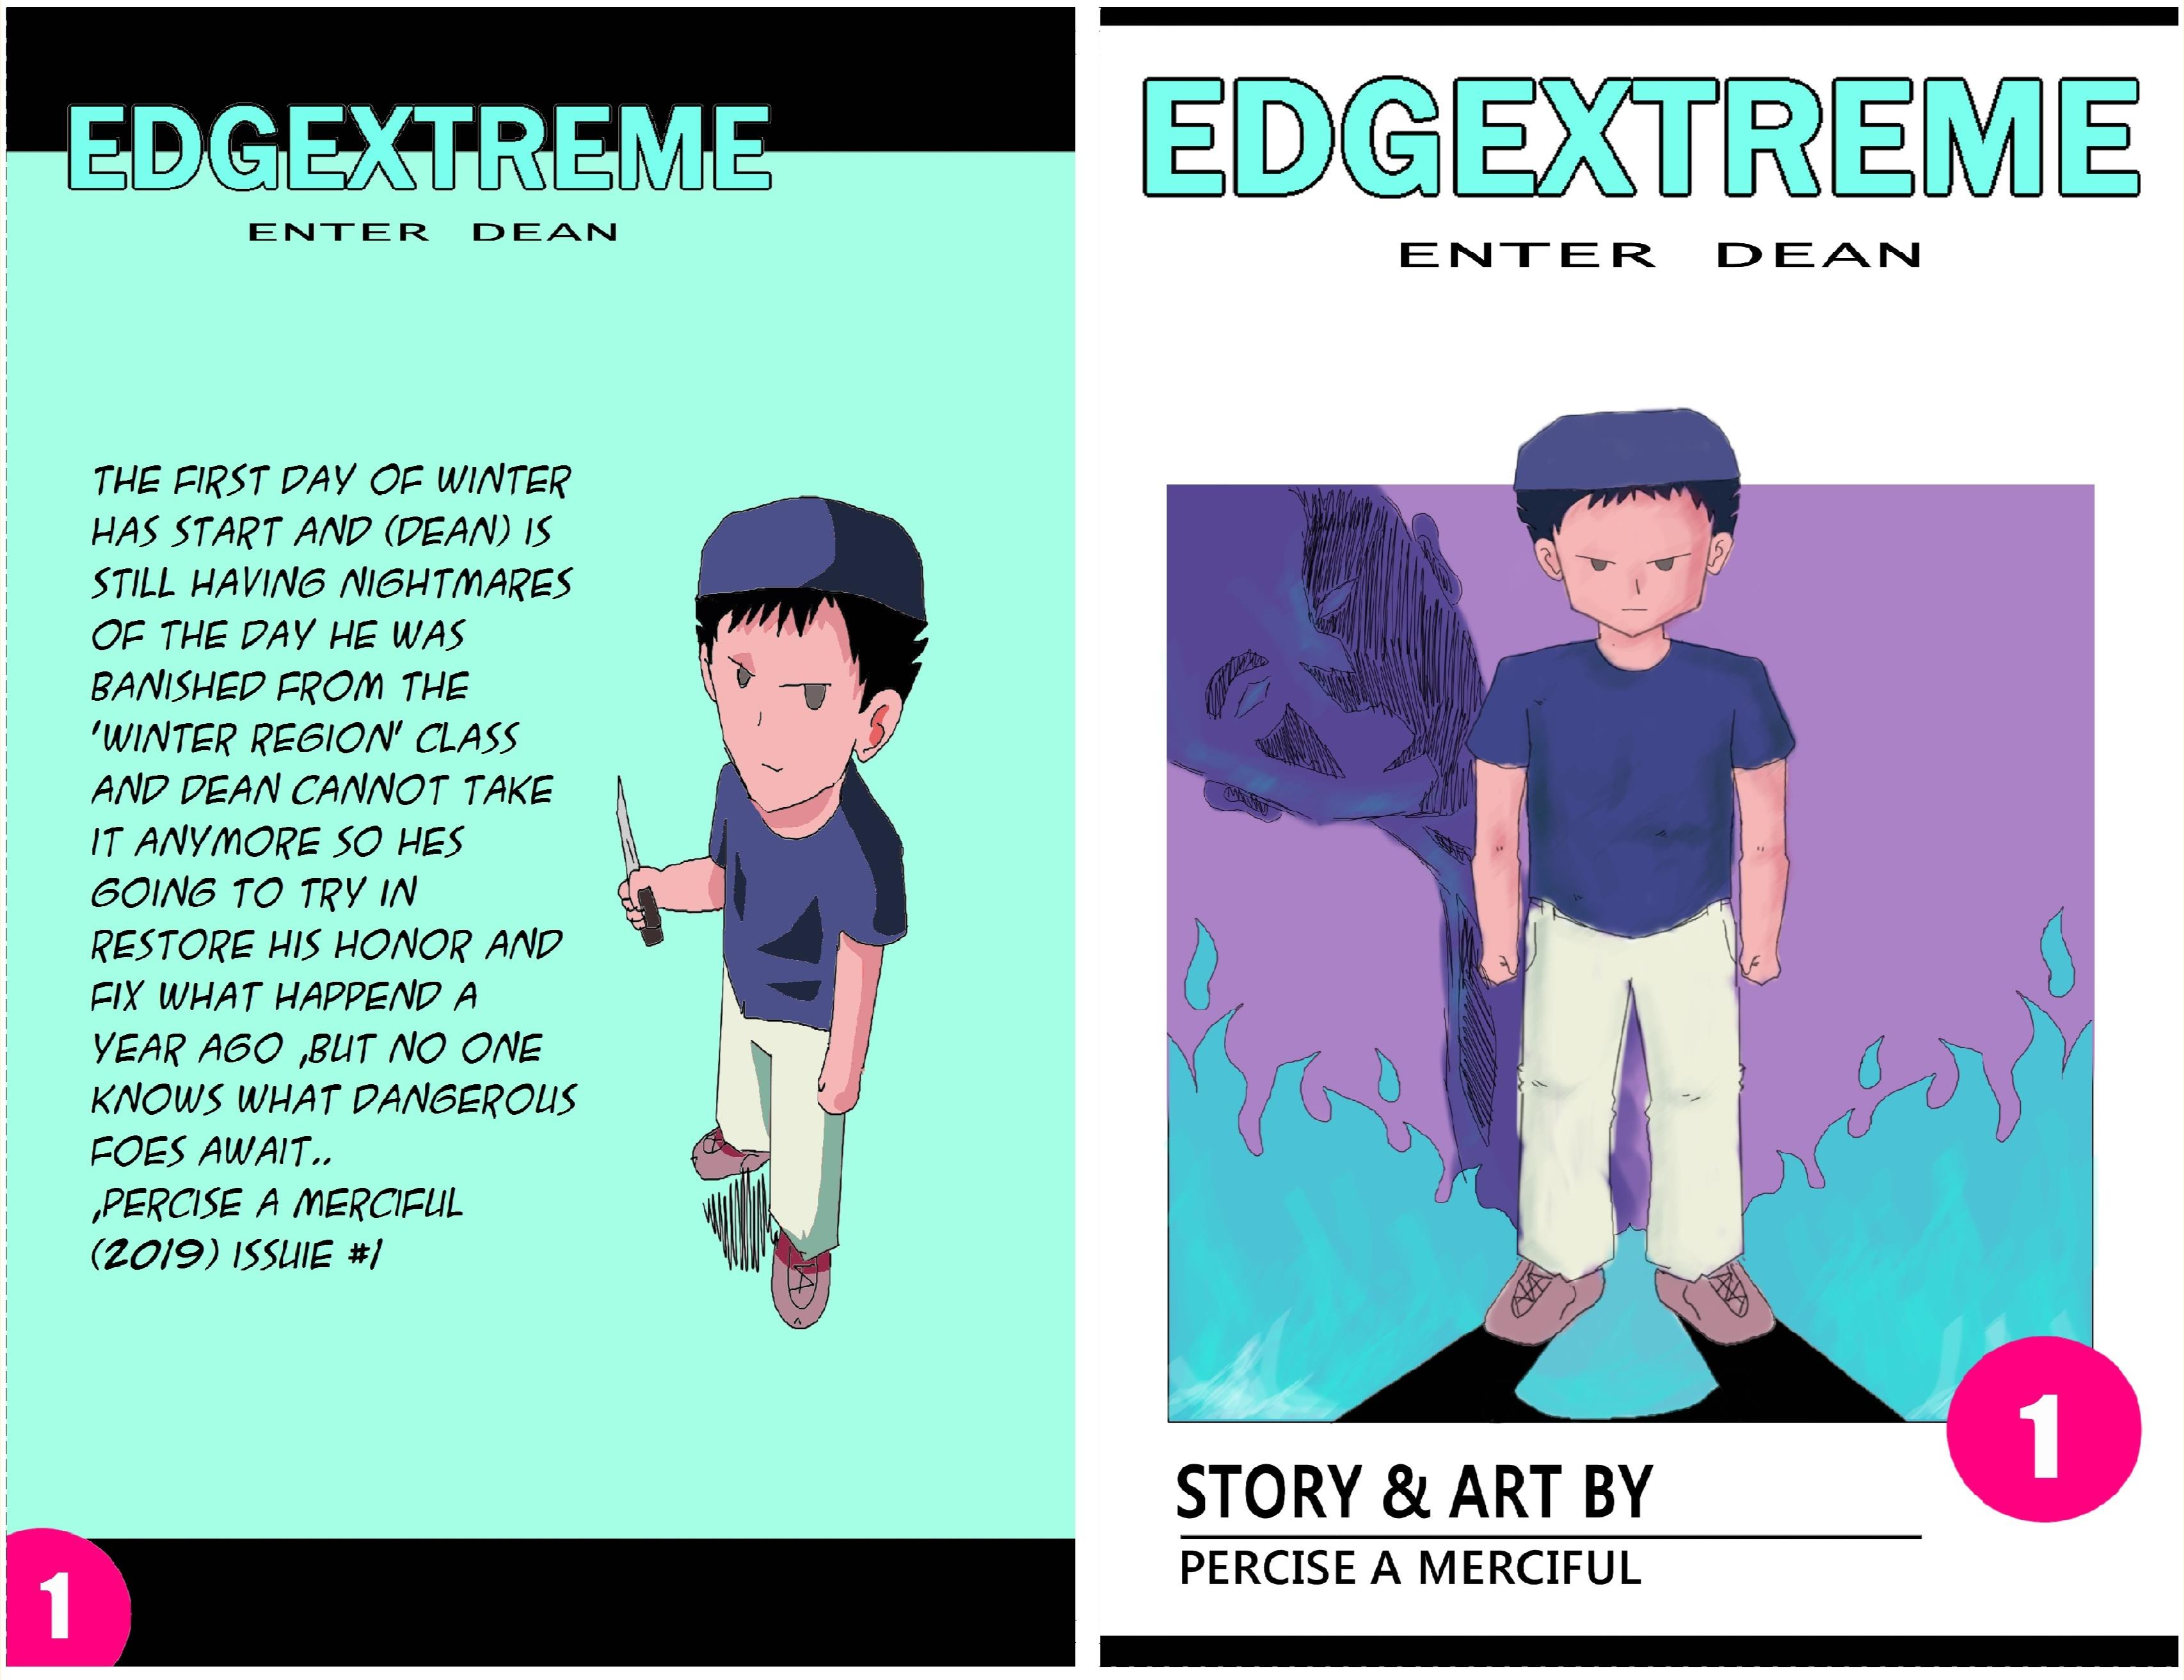 EDGEXTREME (enter dean) cover image